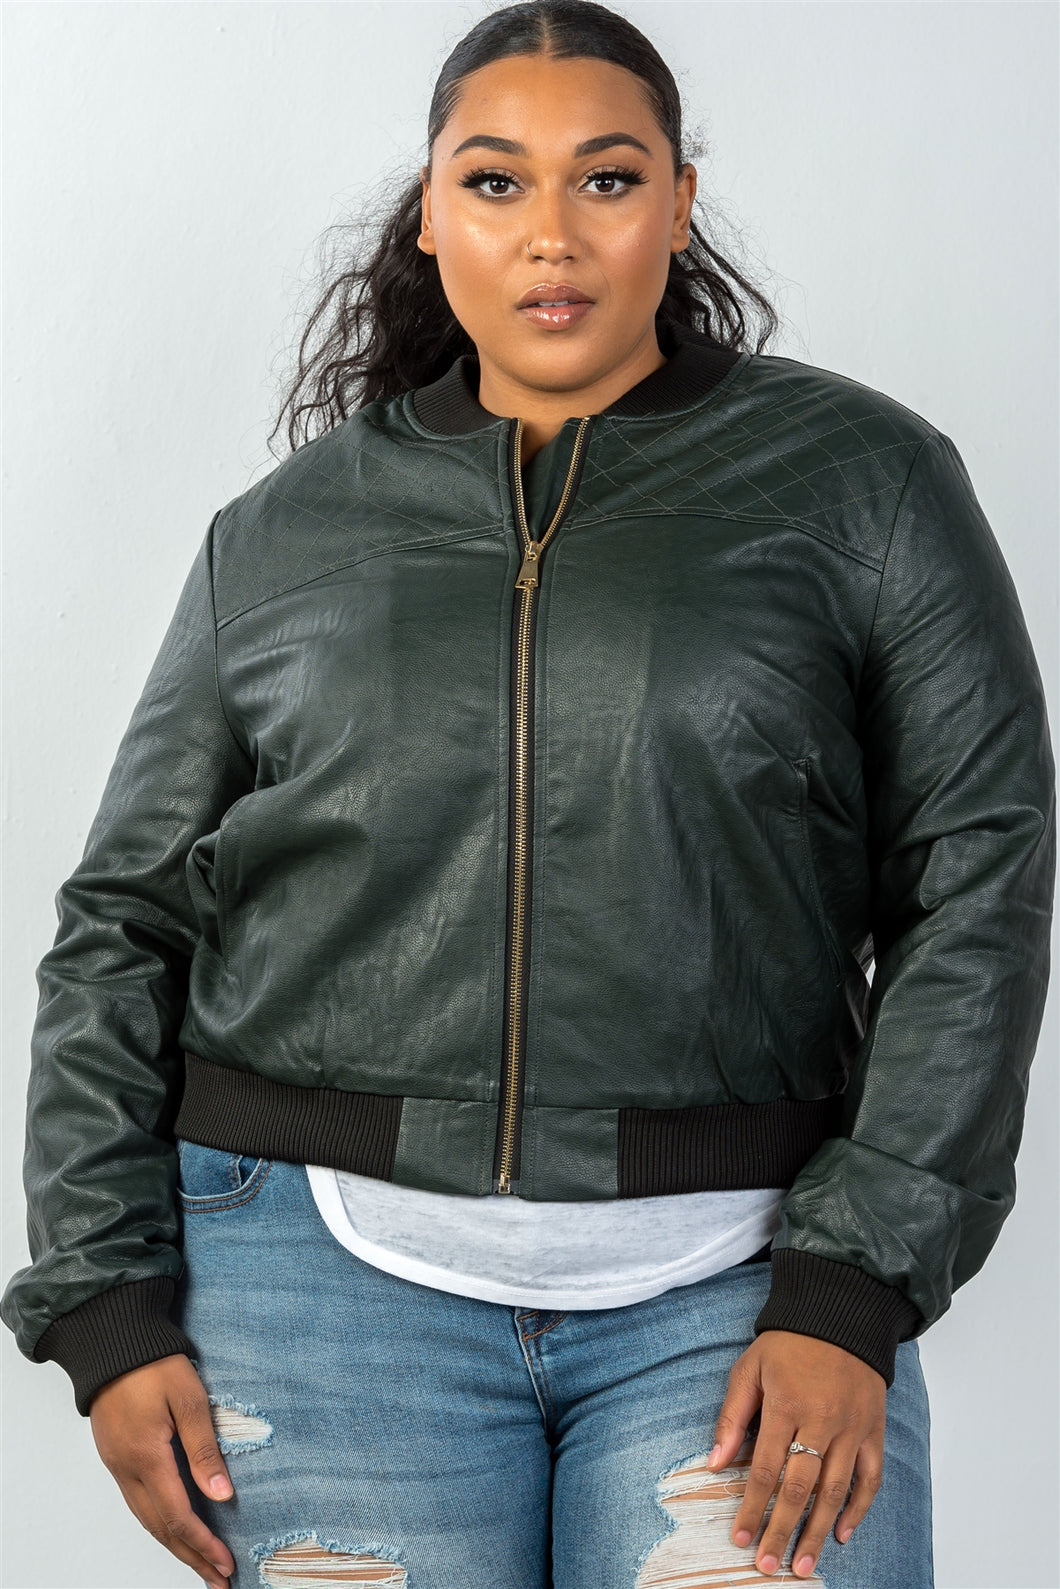 Ladies fashion plus size fully lined peacock pleather bomber jacket - crespo-cynergy